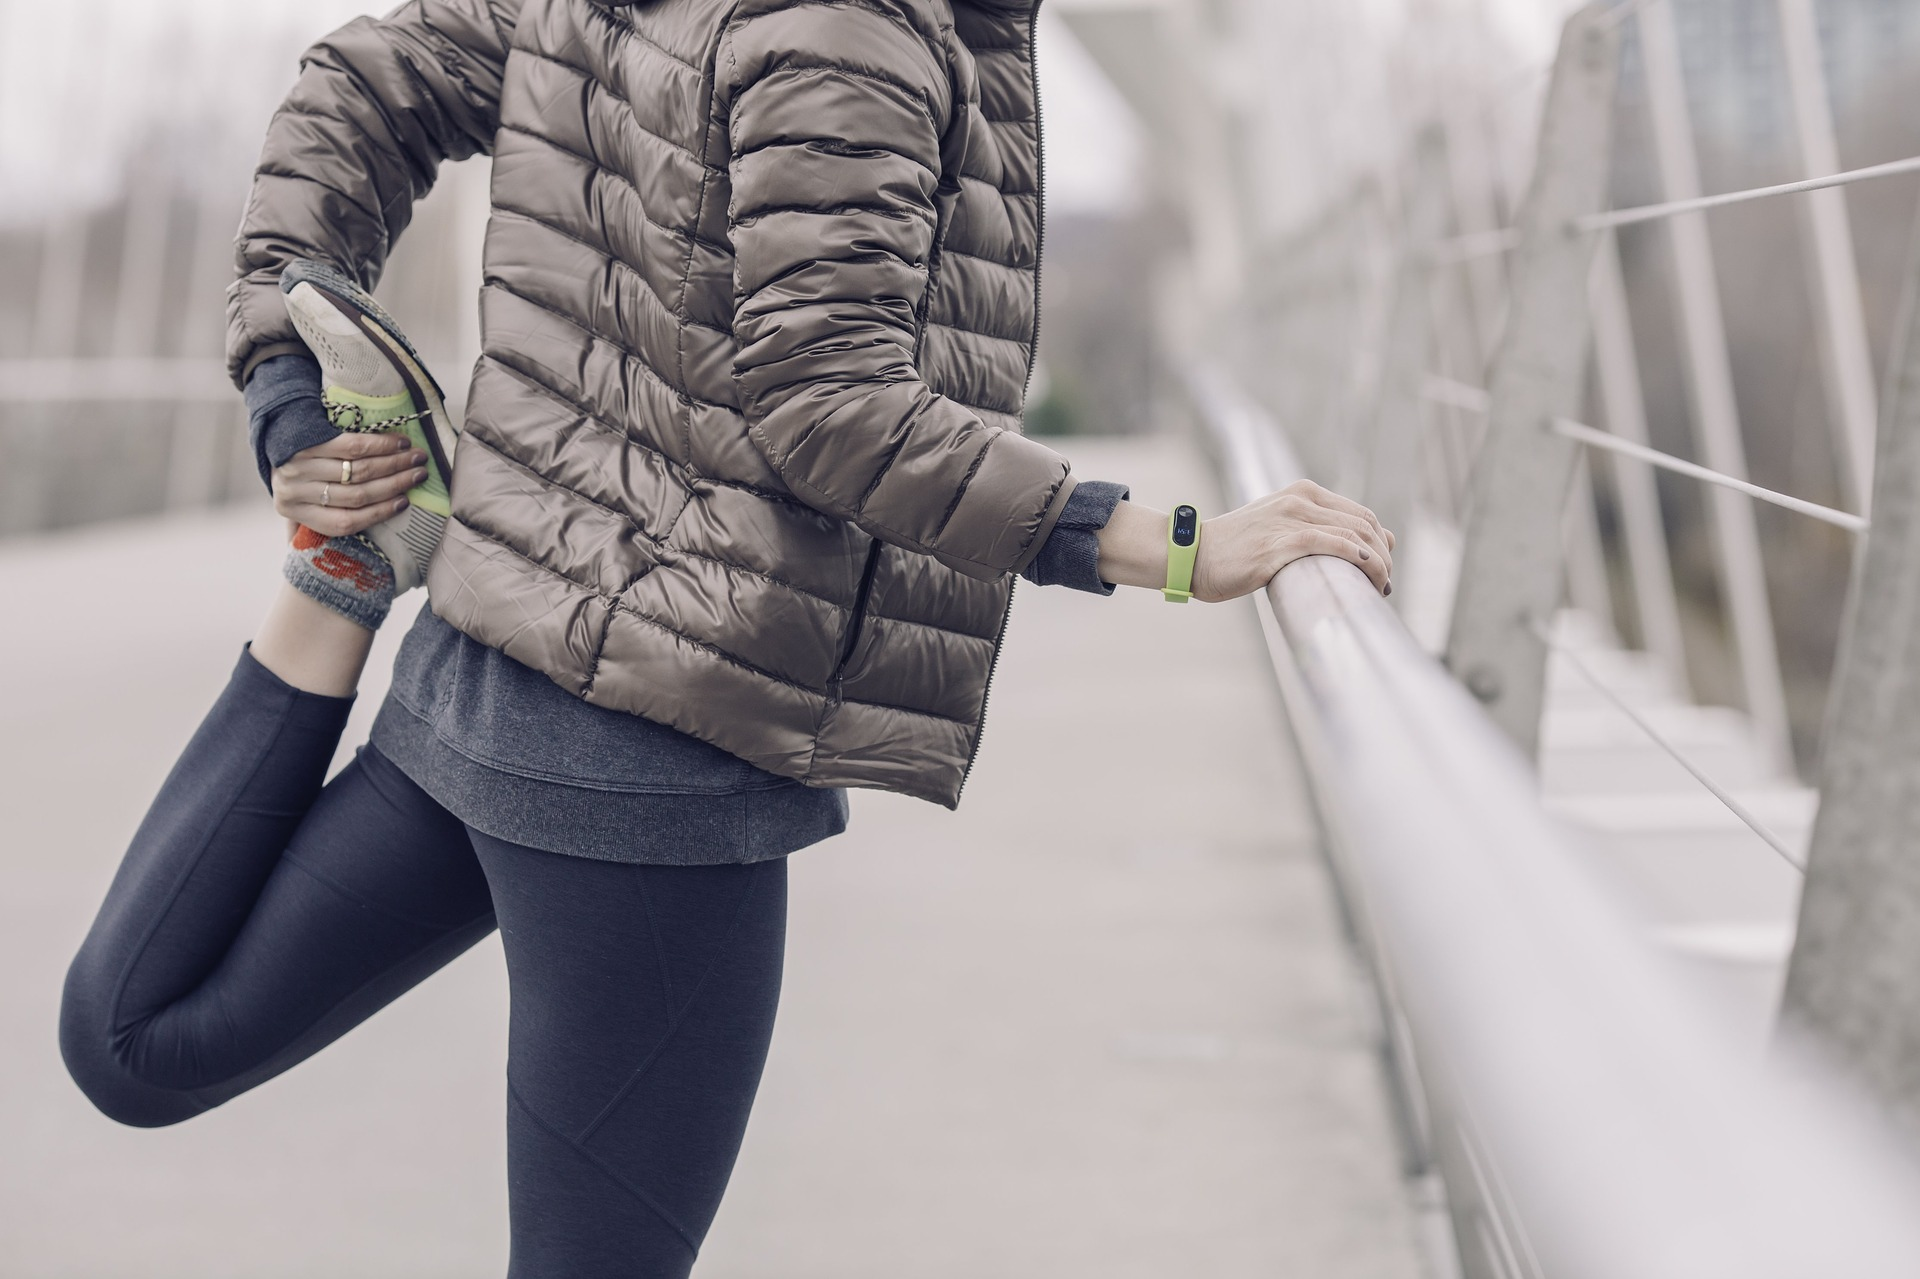 2557515_1920_Cold_workout_stretching_Feet_Weather_excerising_jacket.jpg